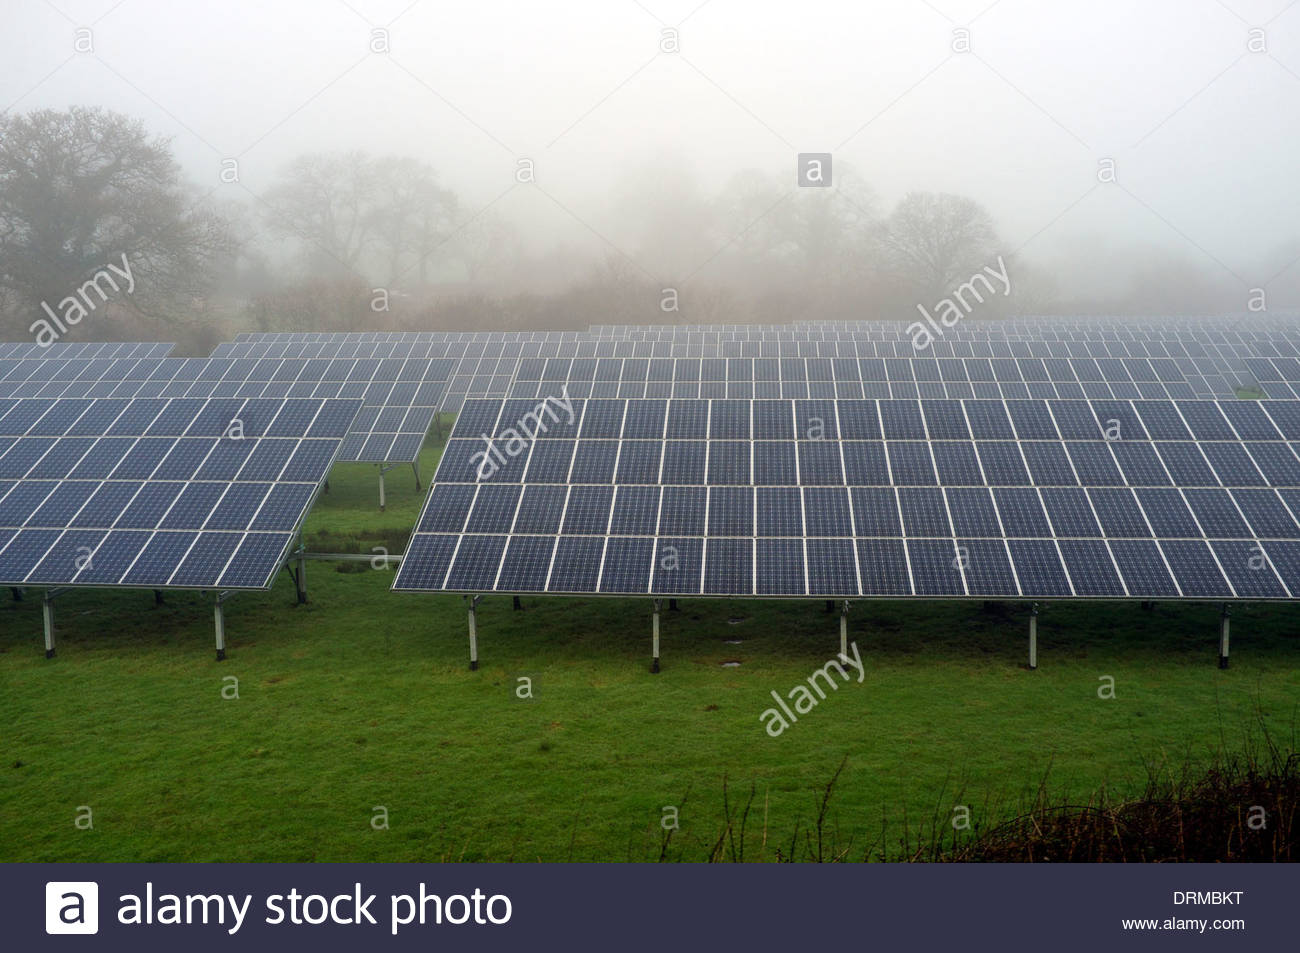 Solar panel farm on a dull misty day, in Somerset, UK. - Stock Image